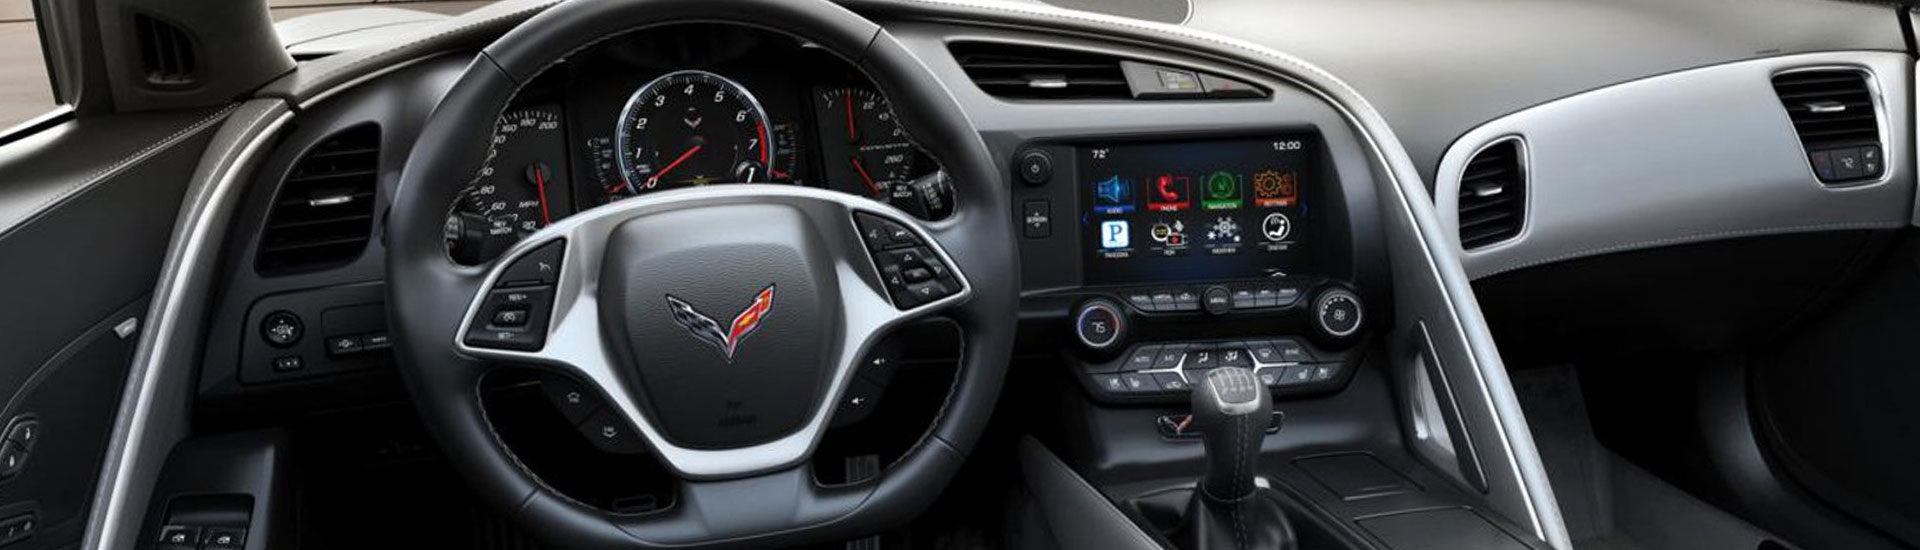 2016 Chevrolet Corvette Dash Kits